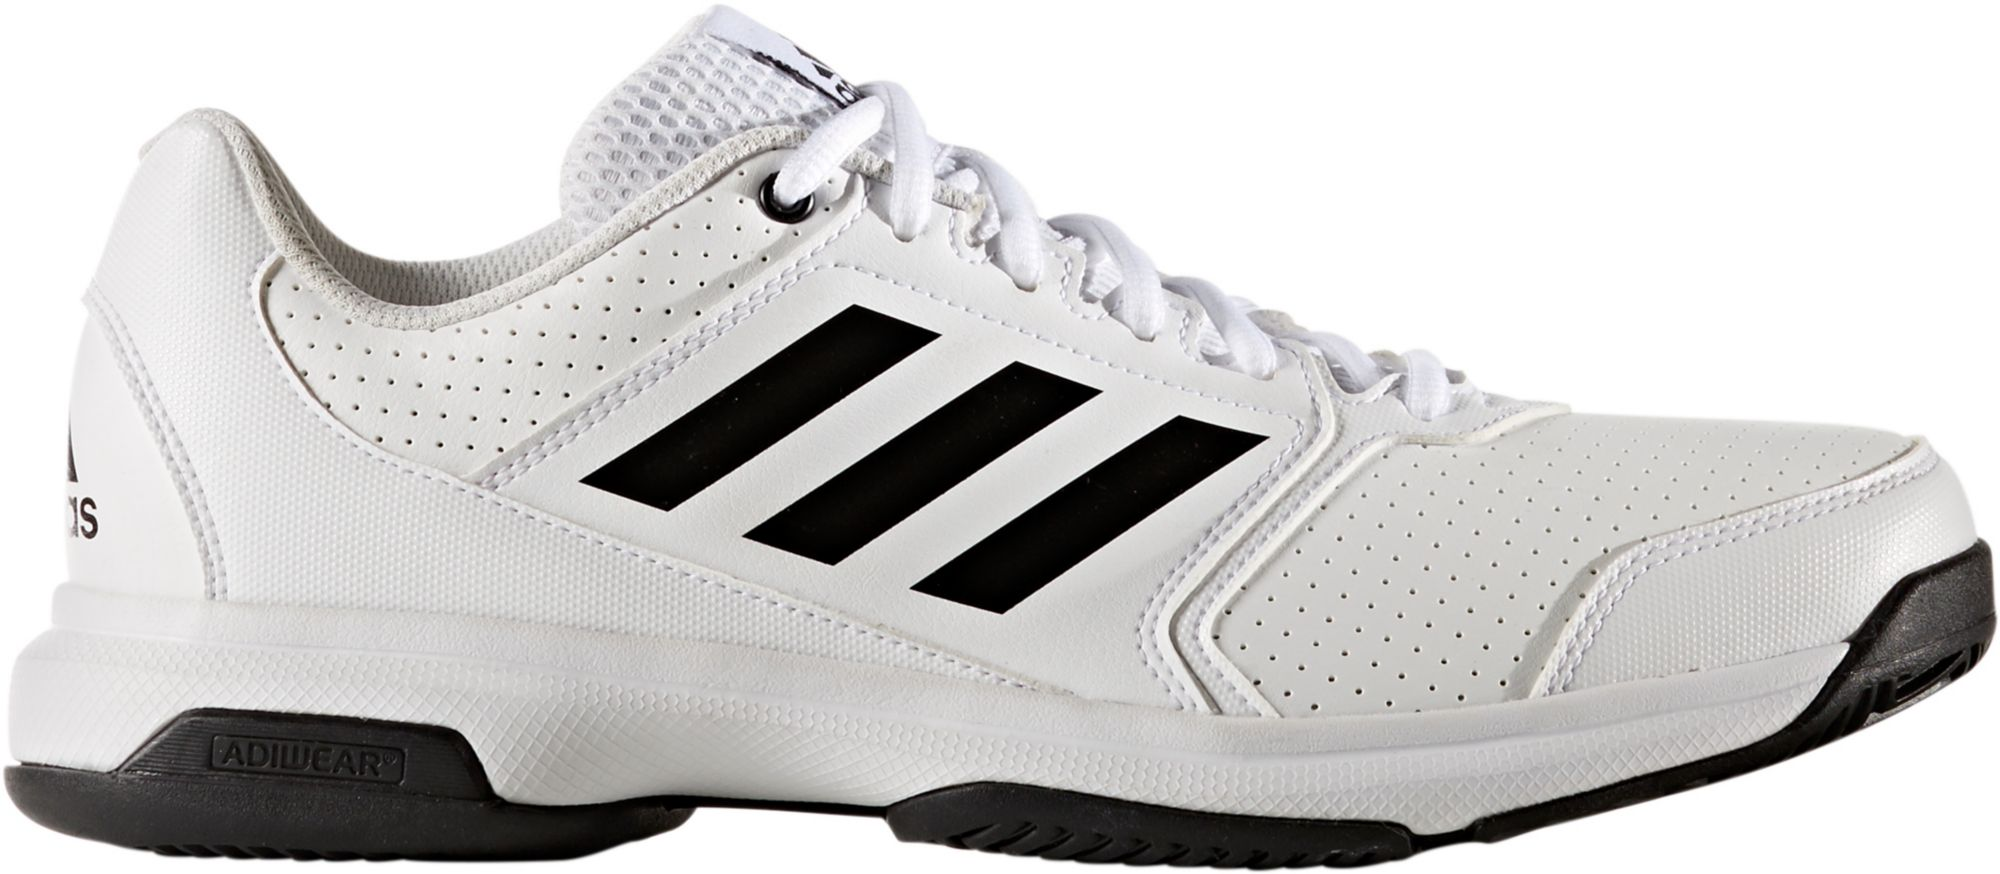 adidas menu0027s adizero attack tennis shoes | dicku0027s sporting goods EOUPUVU